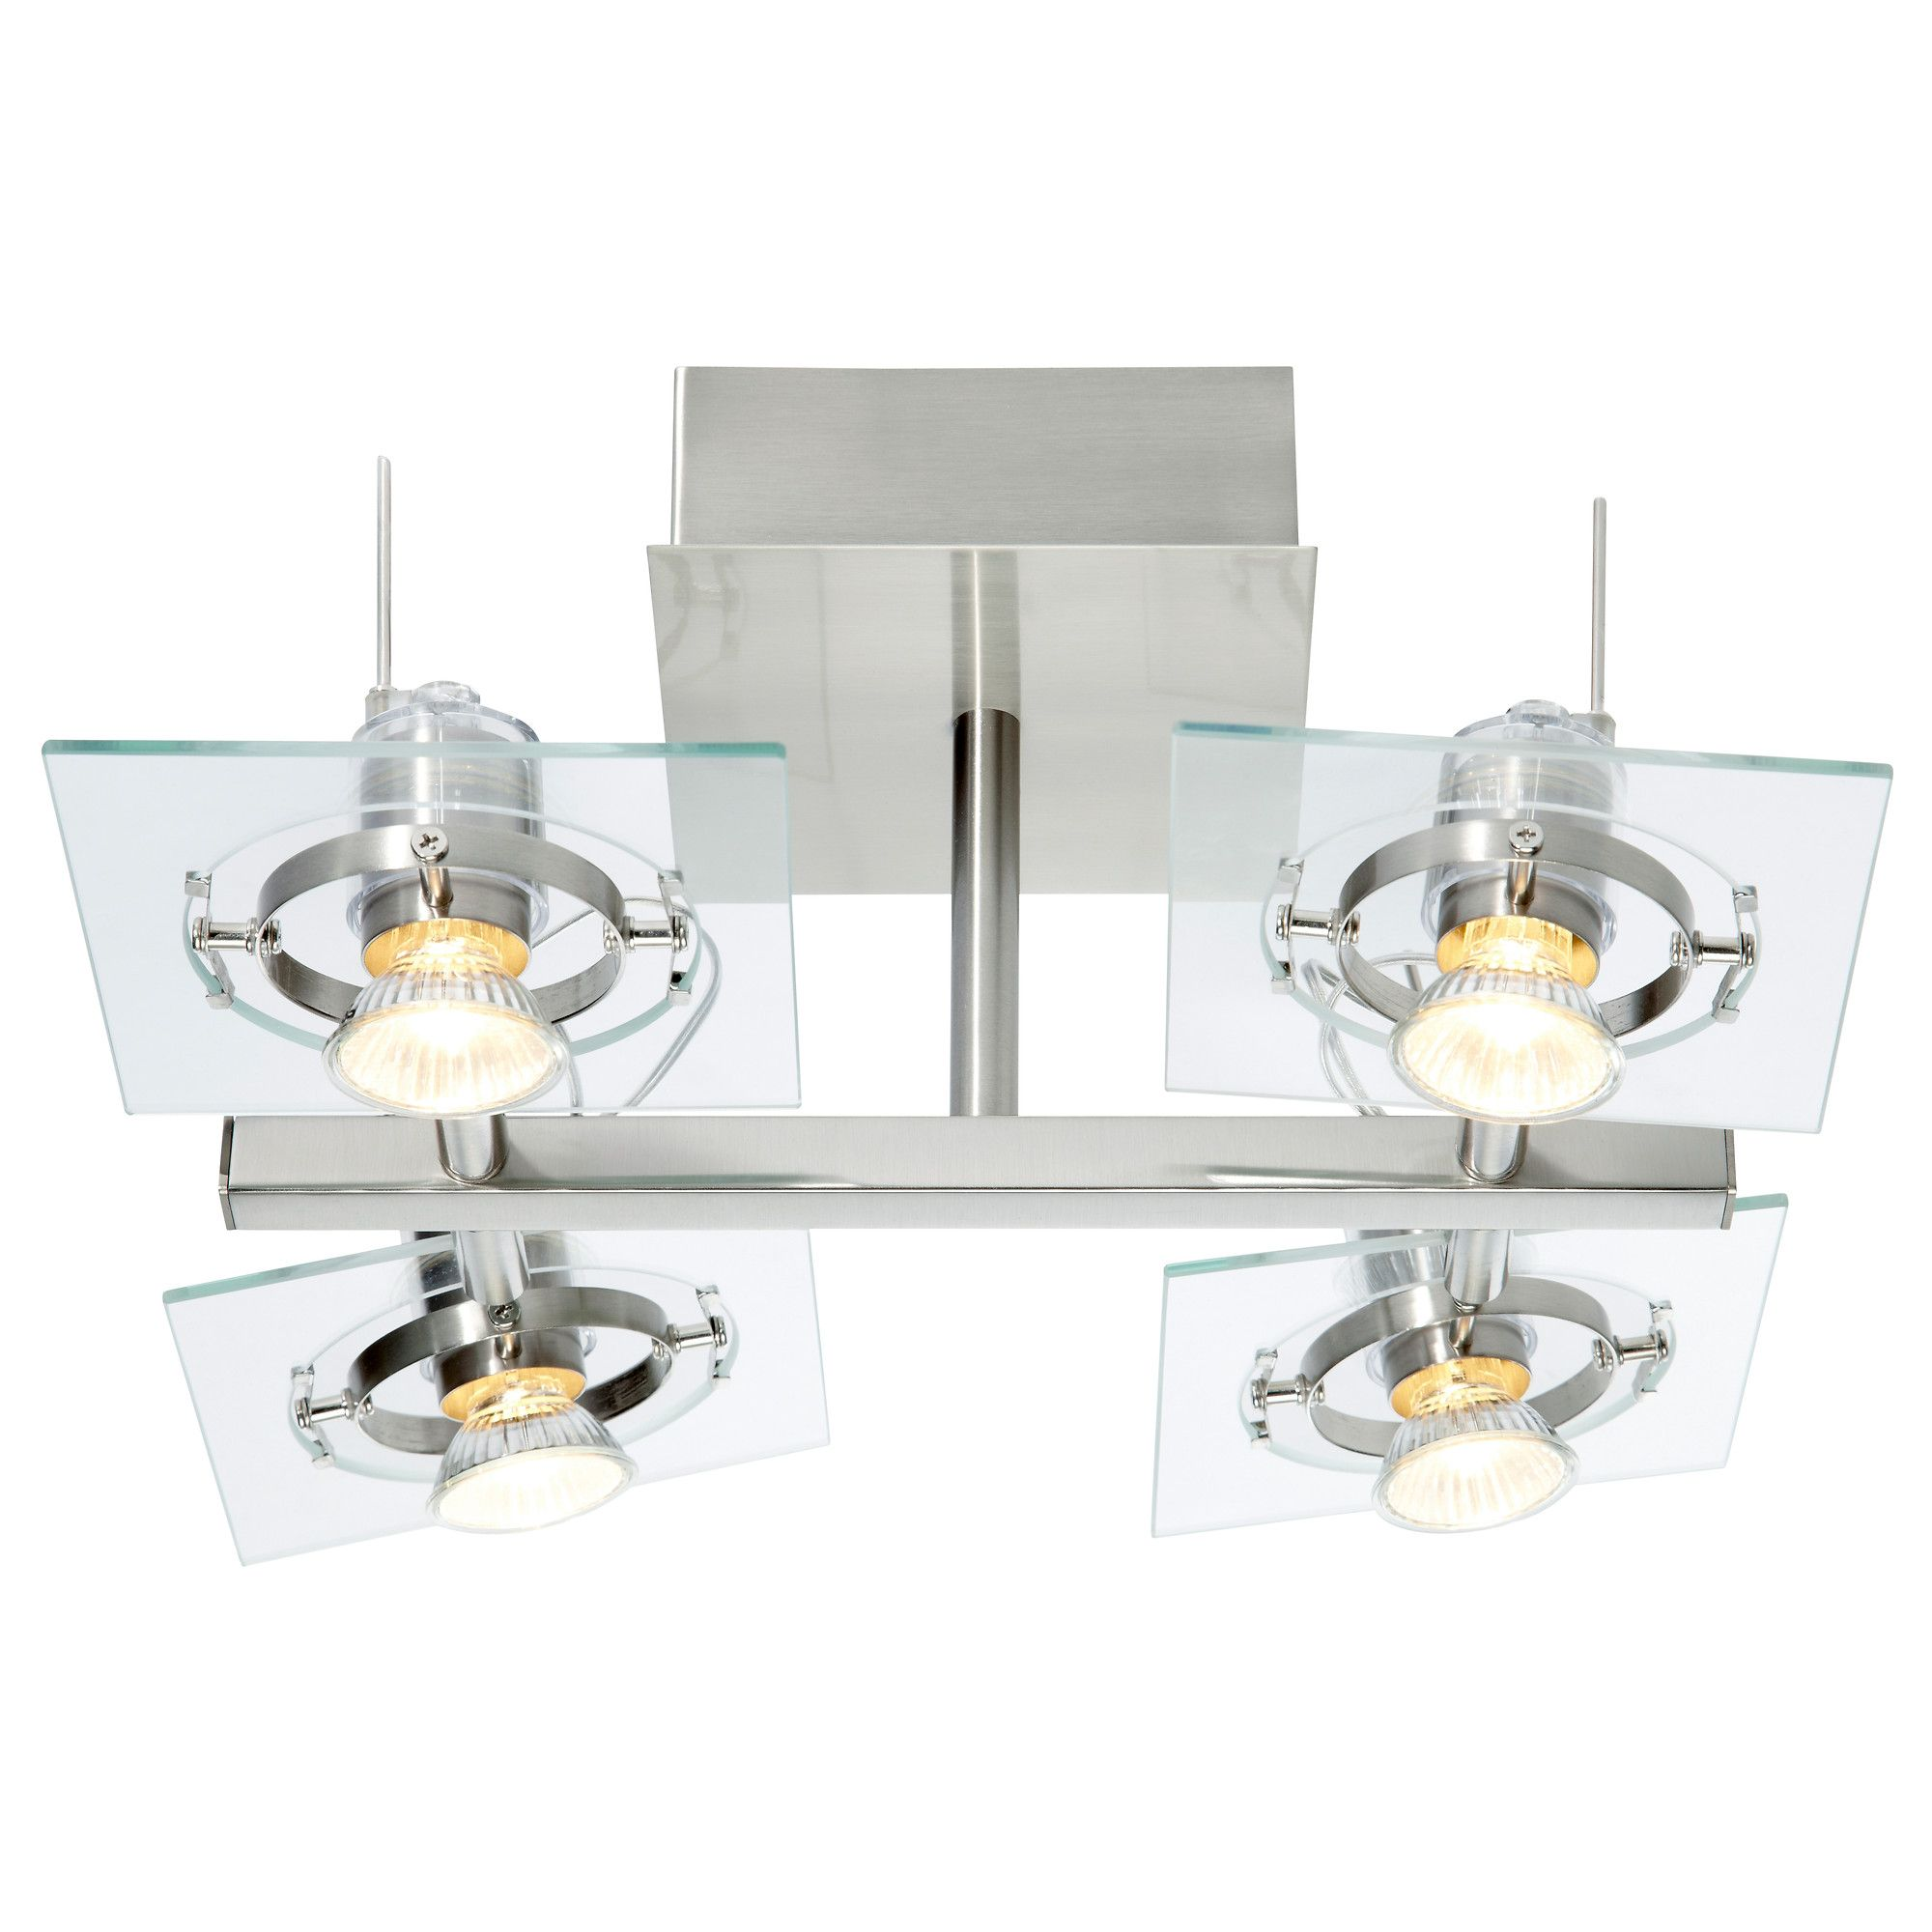 fuga ceiling light with 4 spotlights chrome plated clear glass